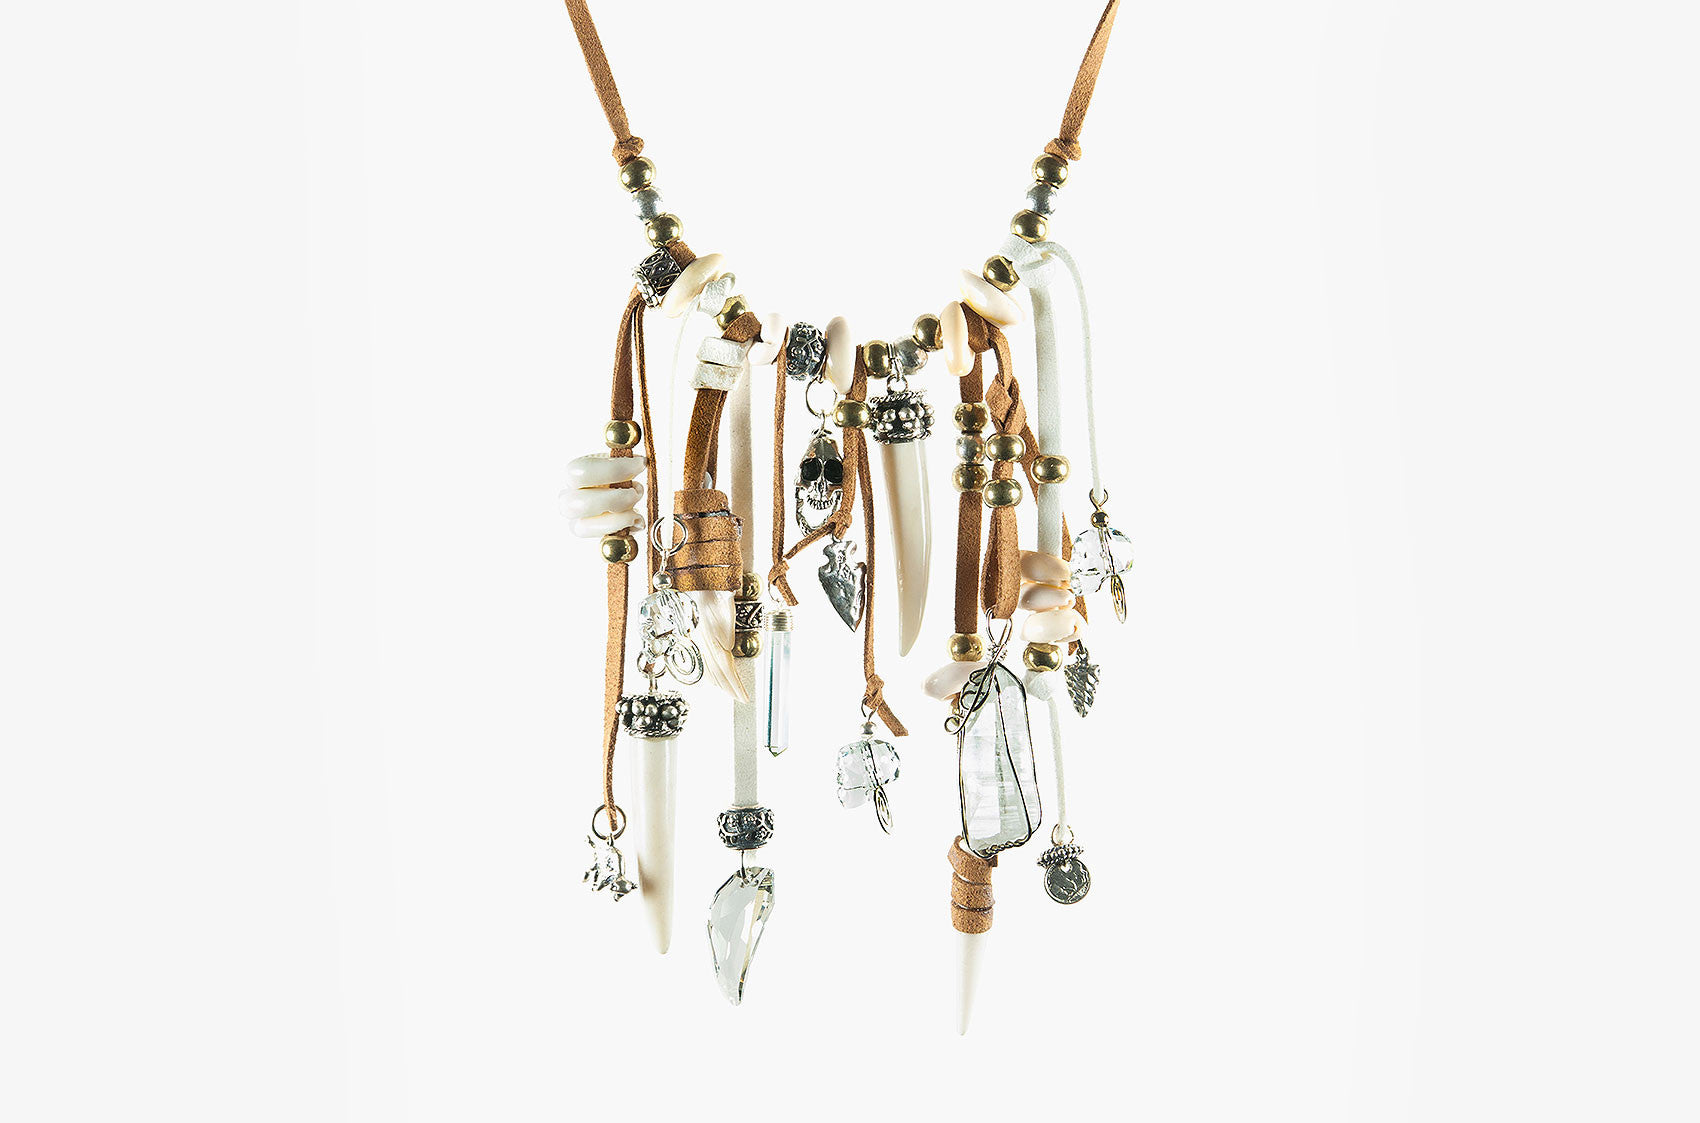 Prairie Princess ornate necklace in tan